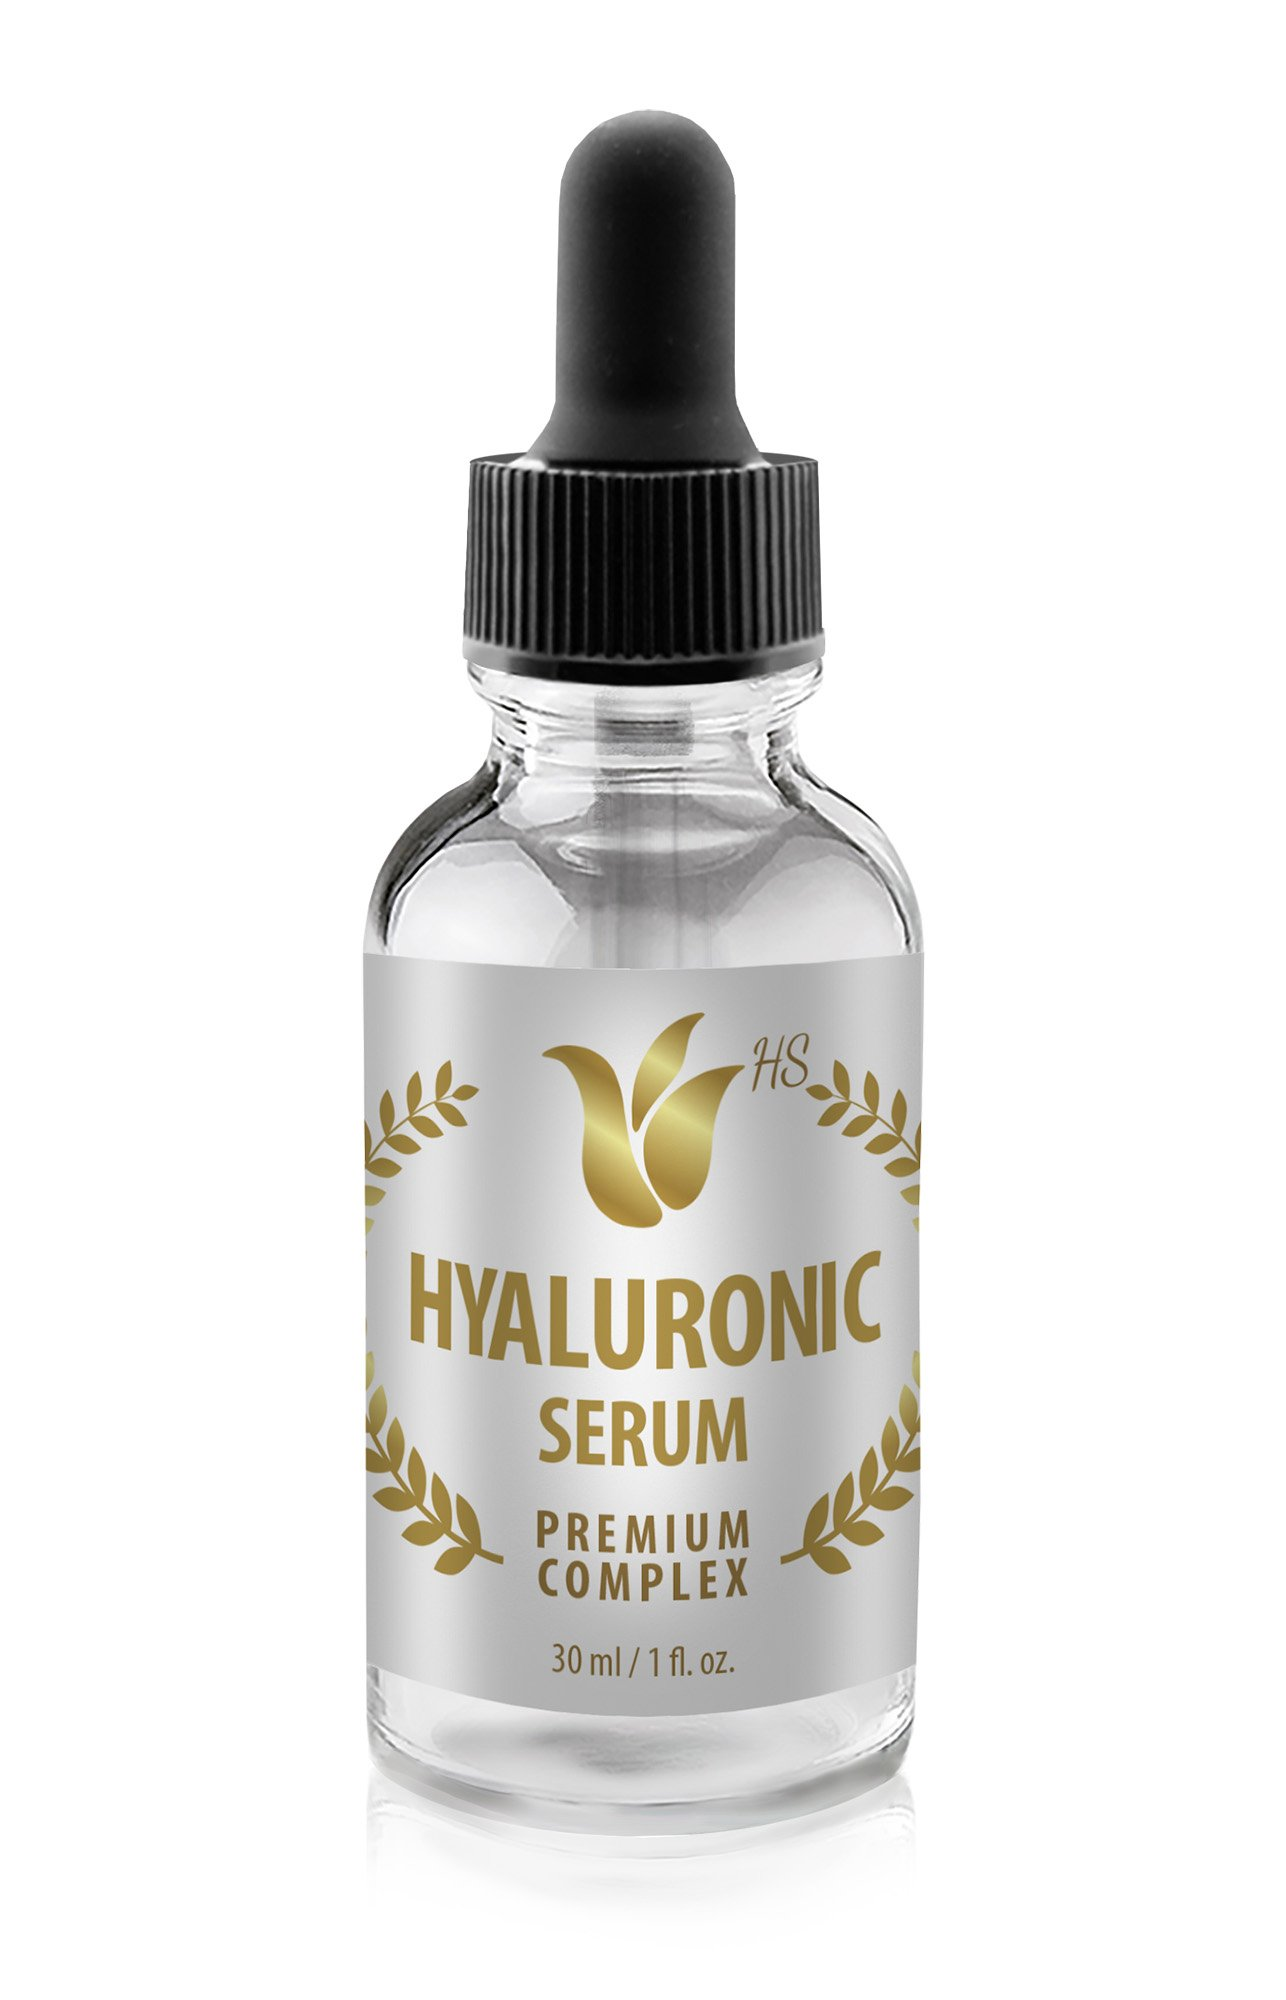 Anti aging serum men - HYALURONIC SERUM PREMIUM COMPLEX - Hyaluronic acid for face serum for face - 1 Bottle by Health Solution Prime